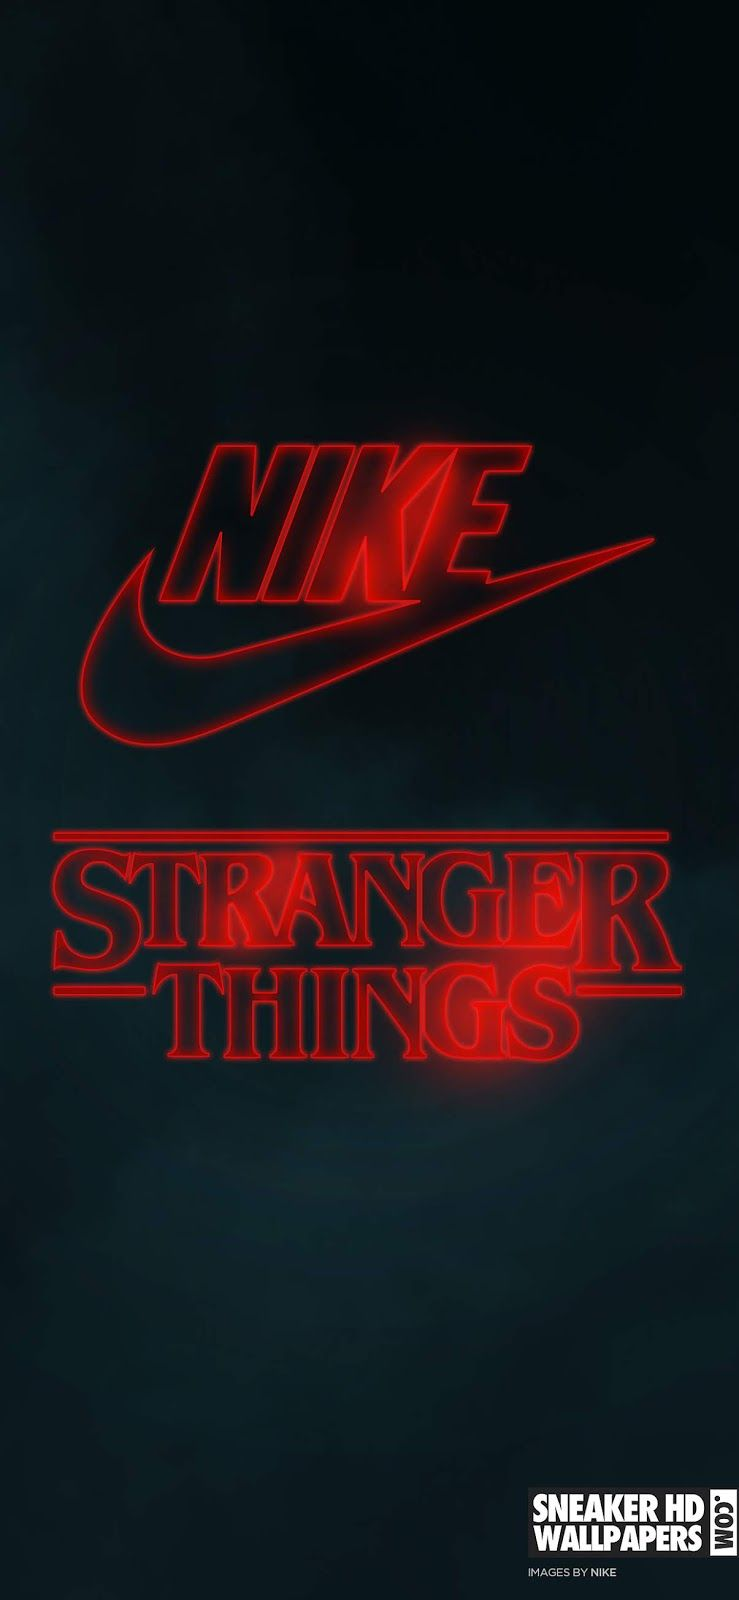 Nike Logo Hd Wallpapers For Iphone X Iphone Xr Iphone 11 Etc Andriblog001 In 2020 Hd Wallpaper Iphone Logo Wallpaper Hd Nike Logo Wallpapers